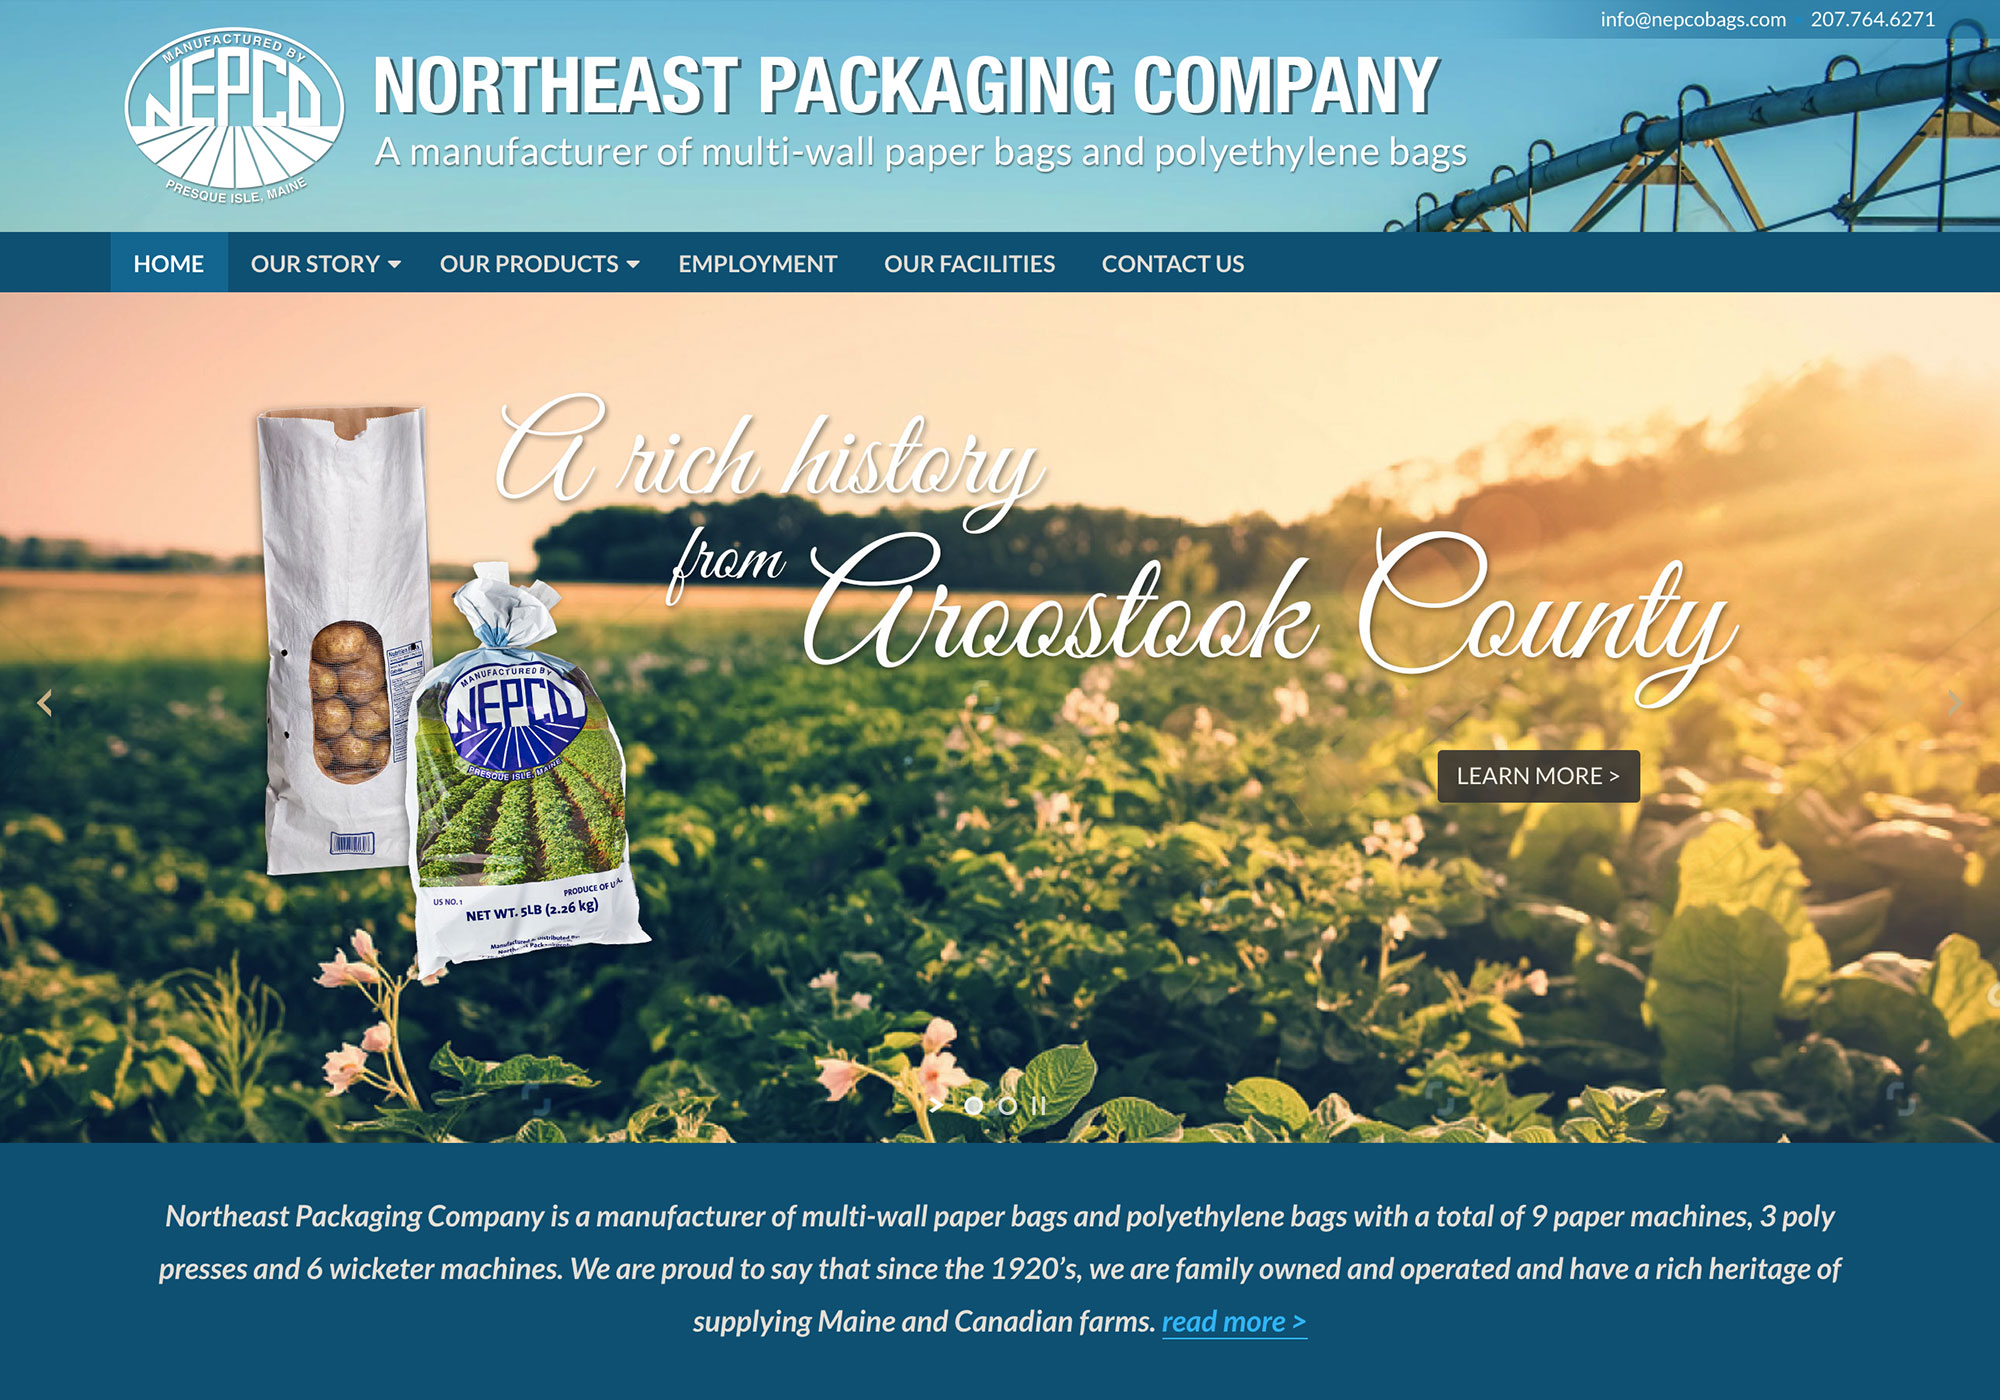 A screenshot of the homepage from the SlickFish Studios designed and developed website for Northeast Packaging Company.